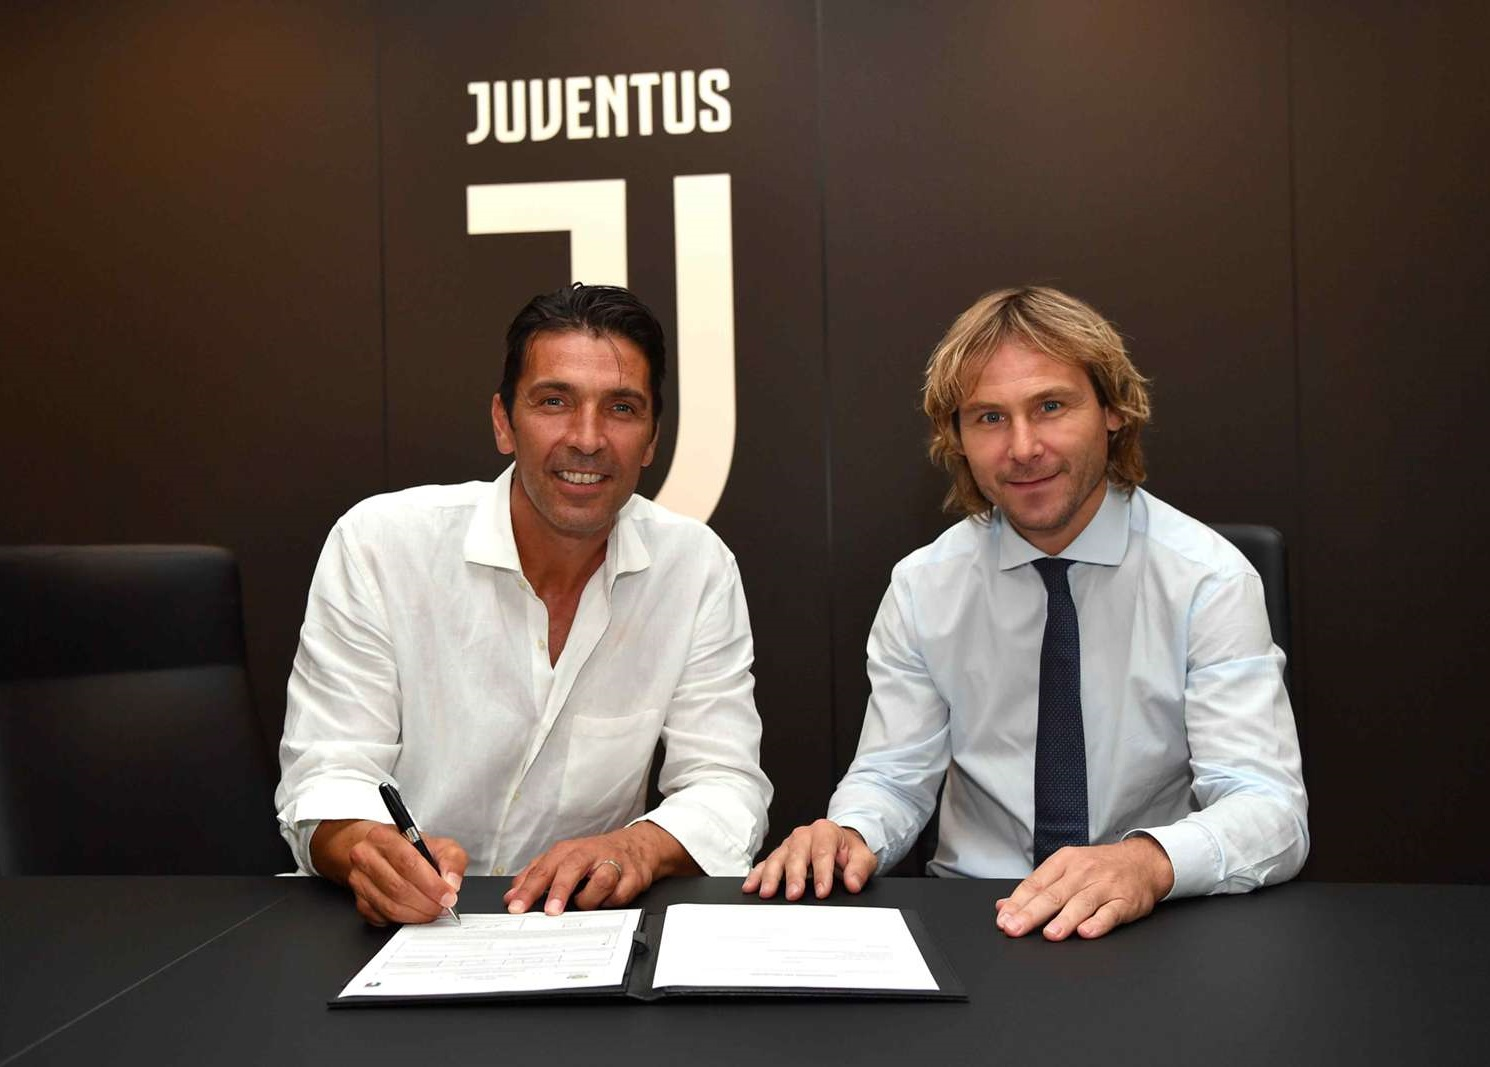 gianluigi-buffon-pavel-nedved_1so7w7mmdd3ty1sbe8h6itw1r9